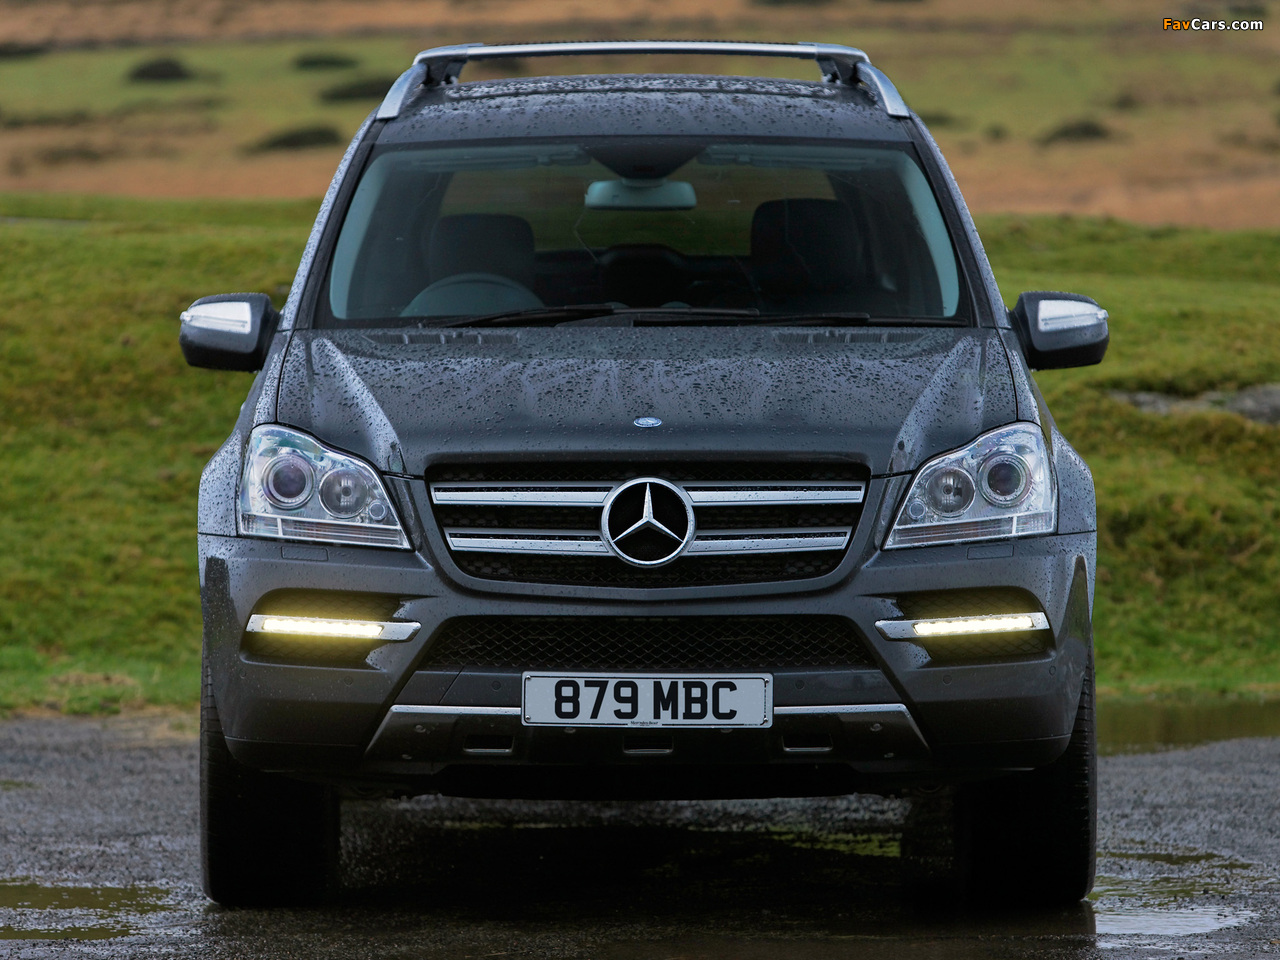 Mercedes benz gl 350 cdi uk spec x164 2009 12 wallpapers for Mercedes benz gl 350 cdi